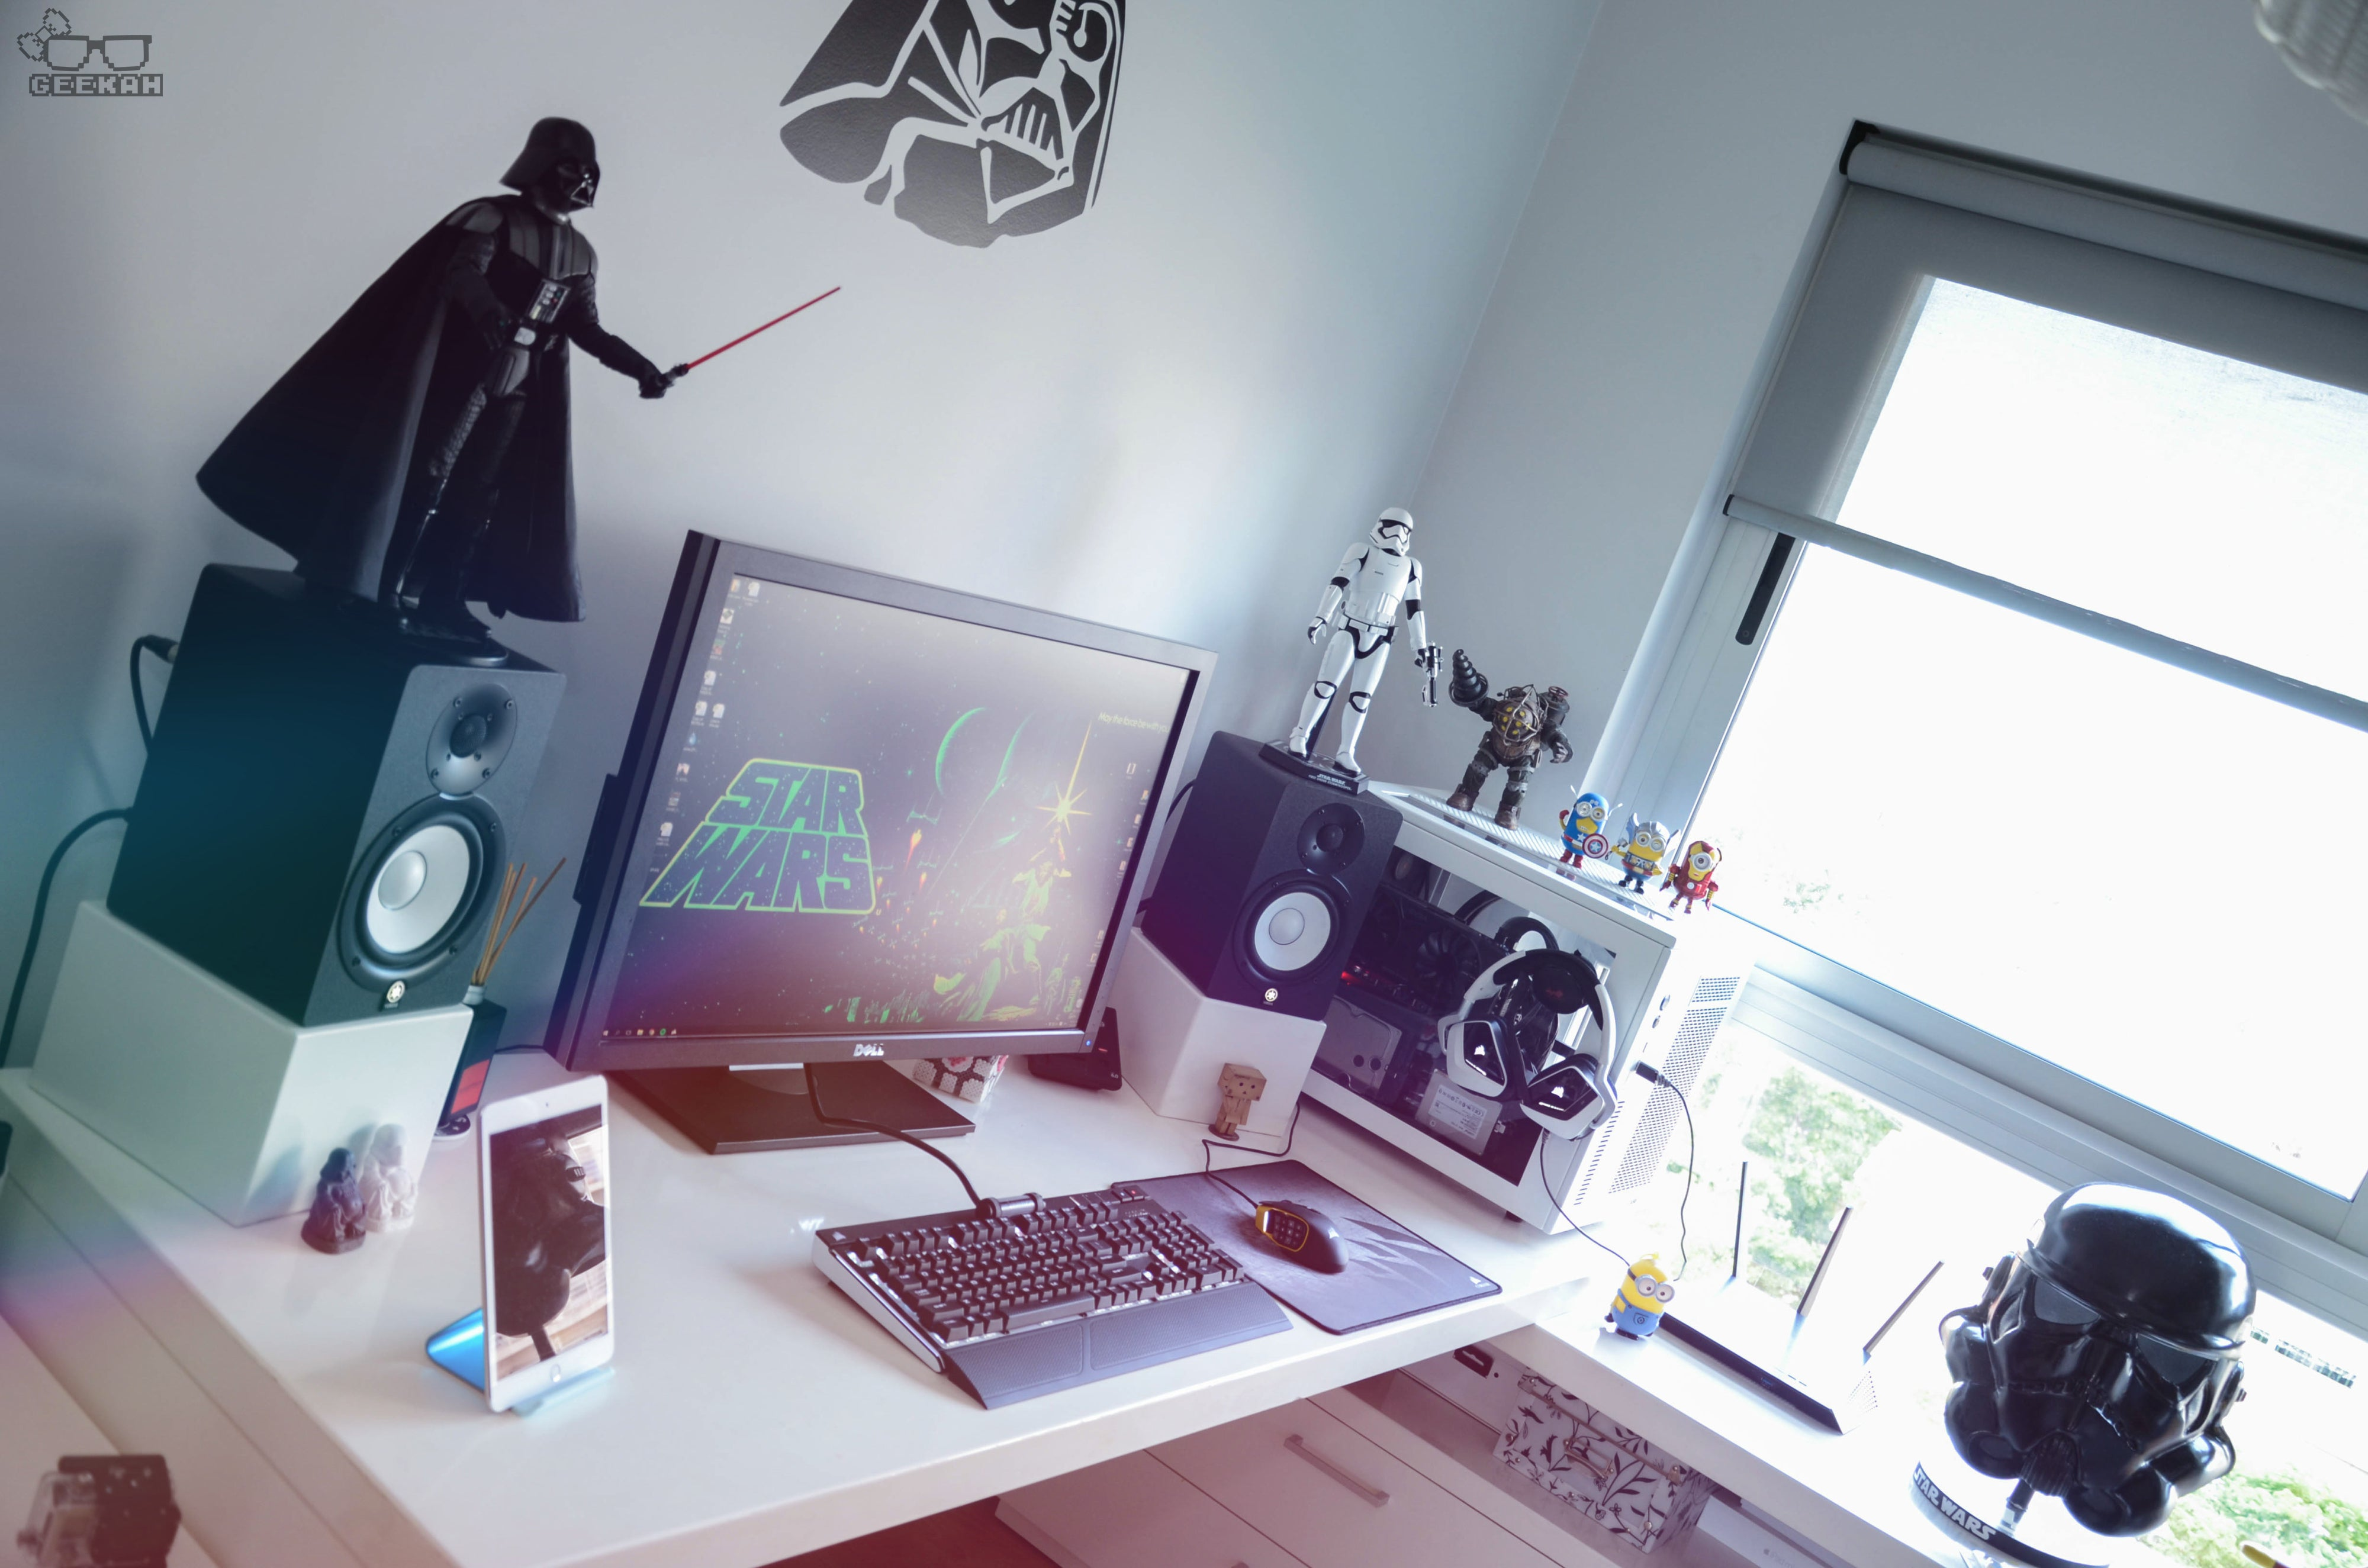 The All Star Wars Workspace